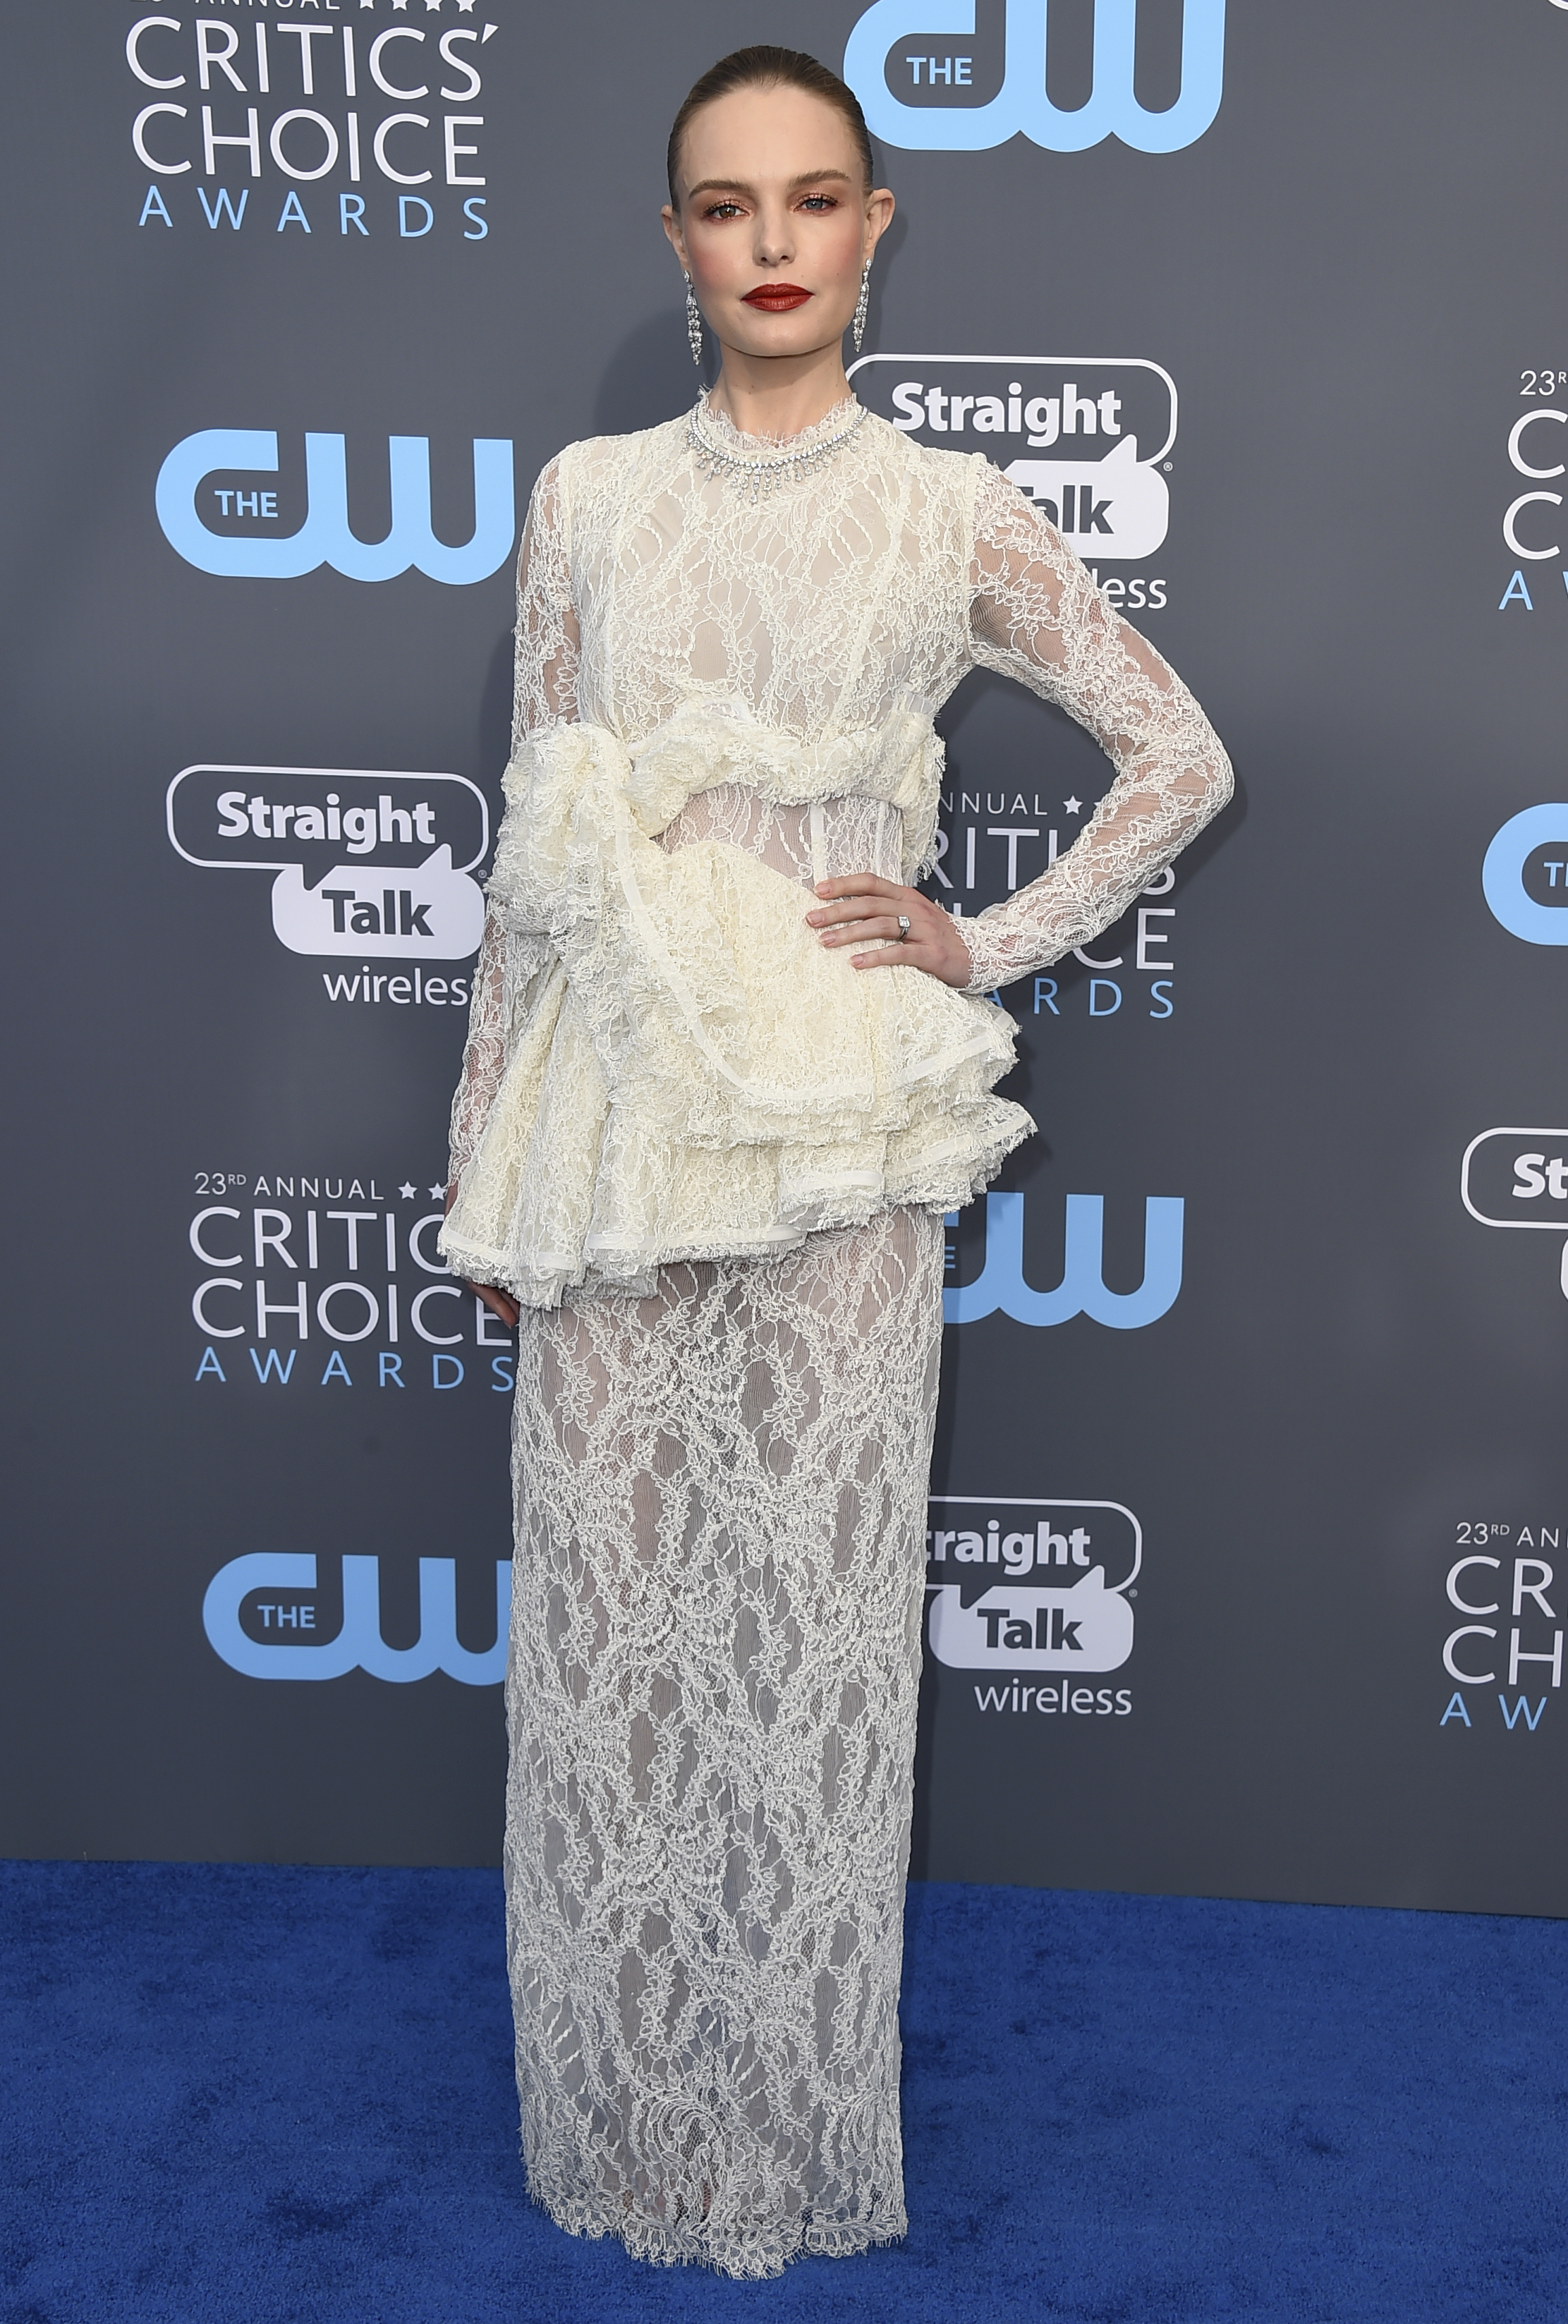 <div class='meta'><div class='origin-logo' data-origin='AP'></div><span class='caption-text' data-credit='Jordan Strauss/Invision/AP'>Kate Bosworth arrives at the 23rd annual Critics' Choice Awards at the Barker Hangar on Thursday, Jan. 11, 2018, in Santa Monica, Calif.</span></div>